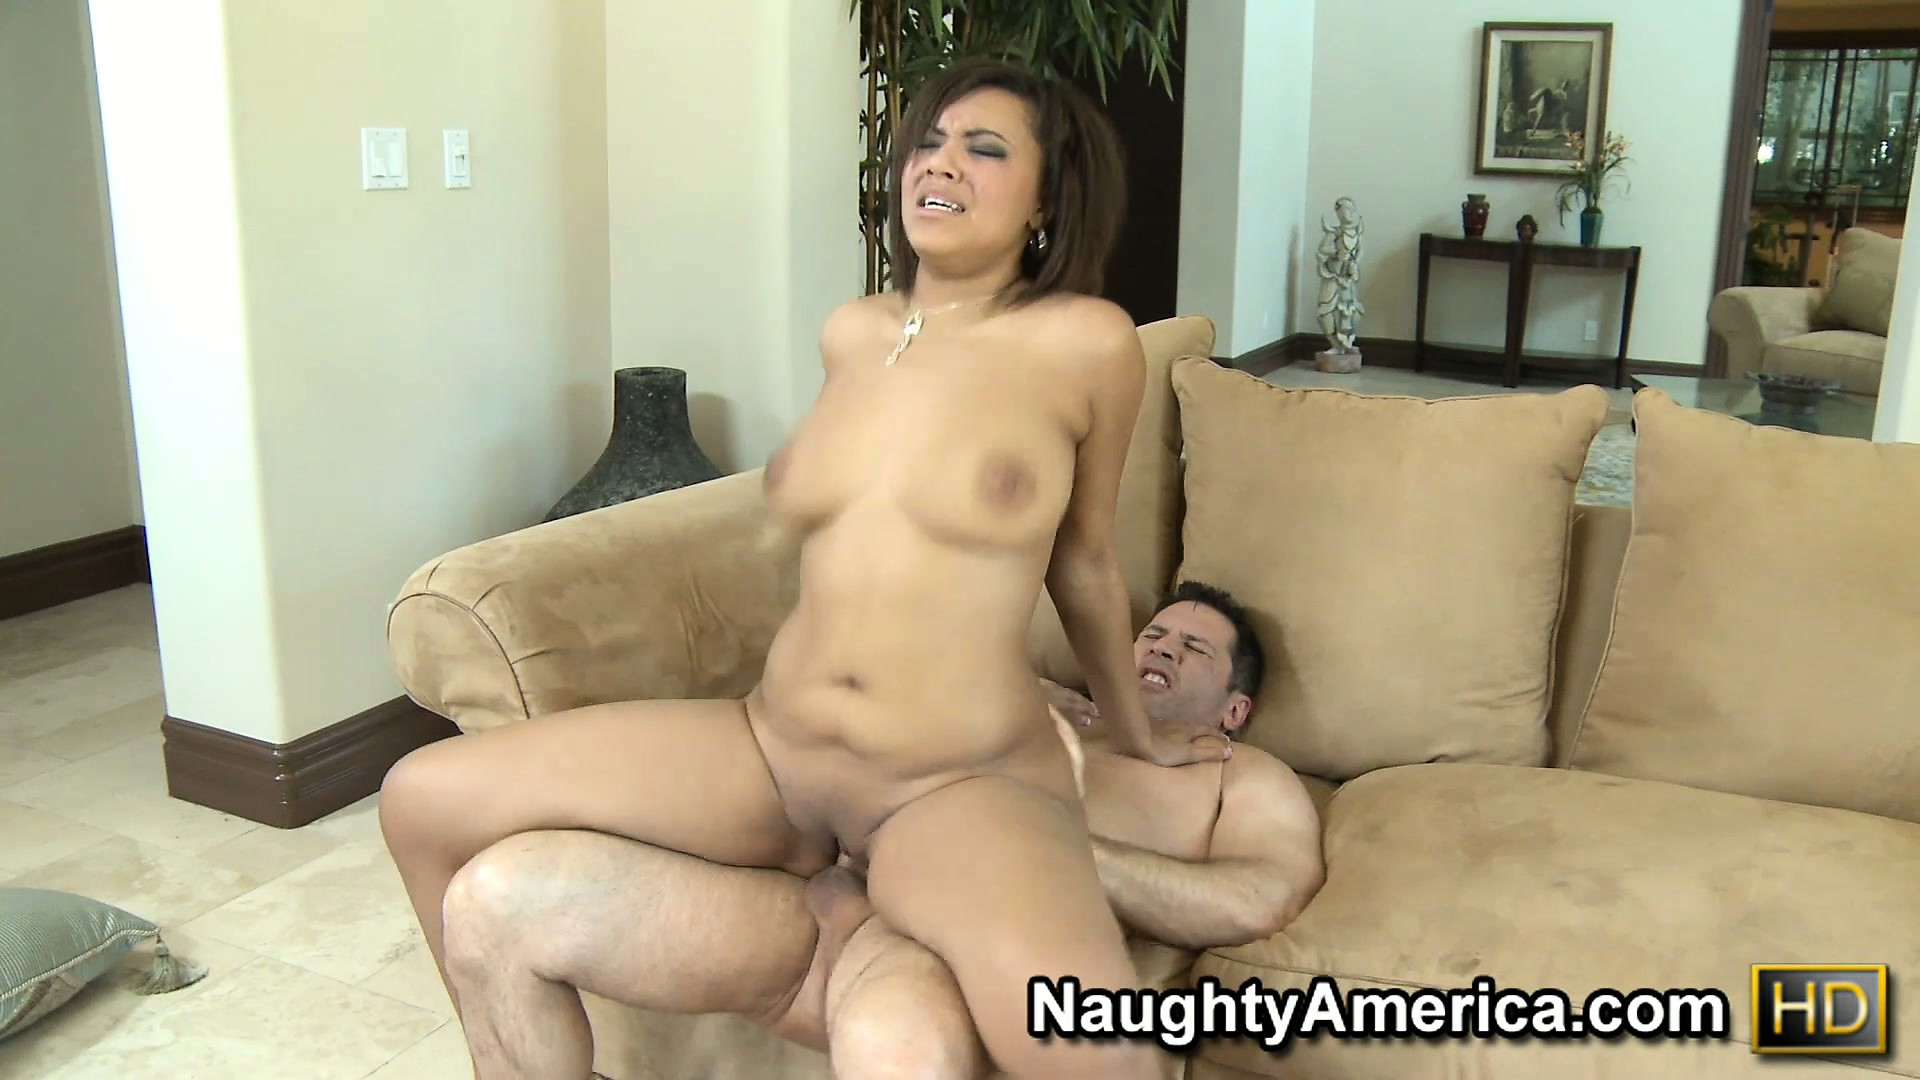 Porn Tube of Catalina Won't Stop Riding That Big Shaft Until She Finds The Pleasure She Seeks